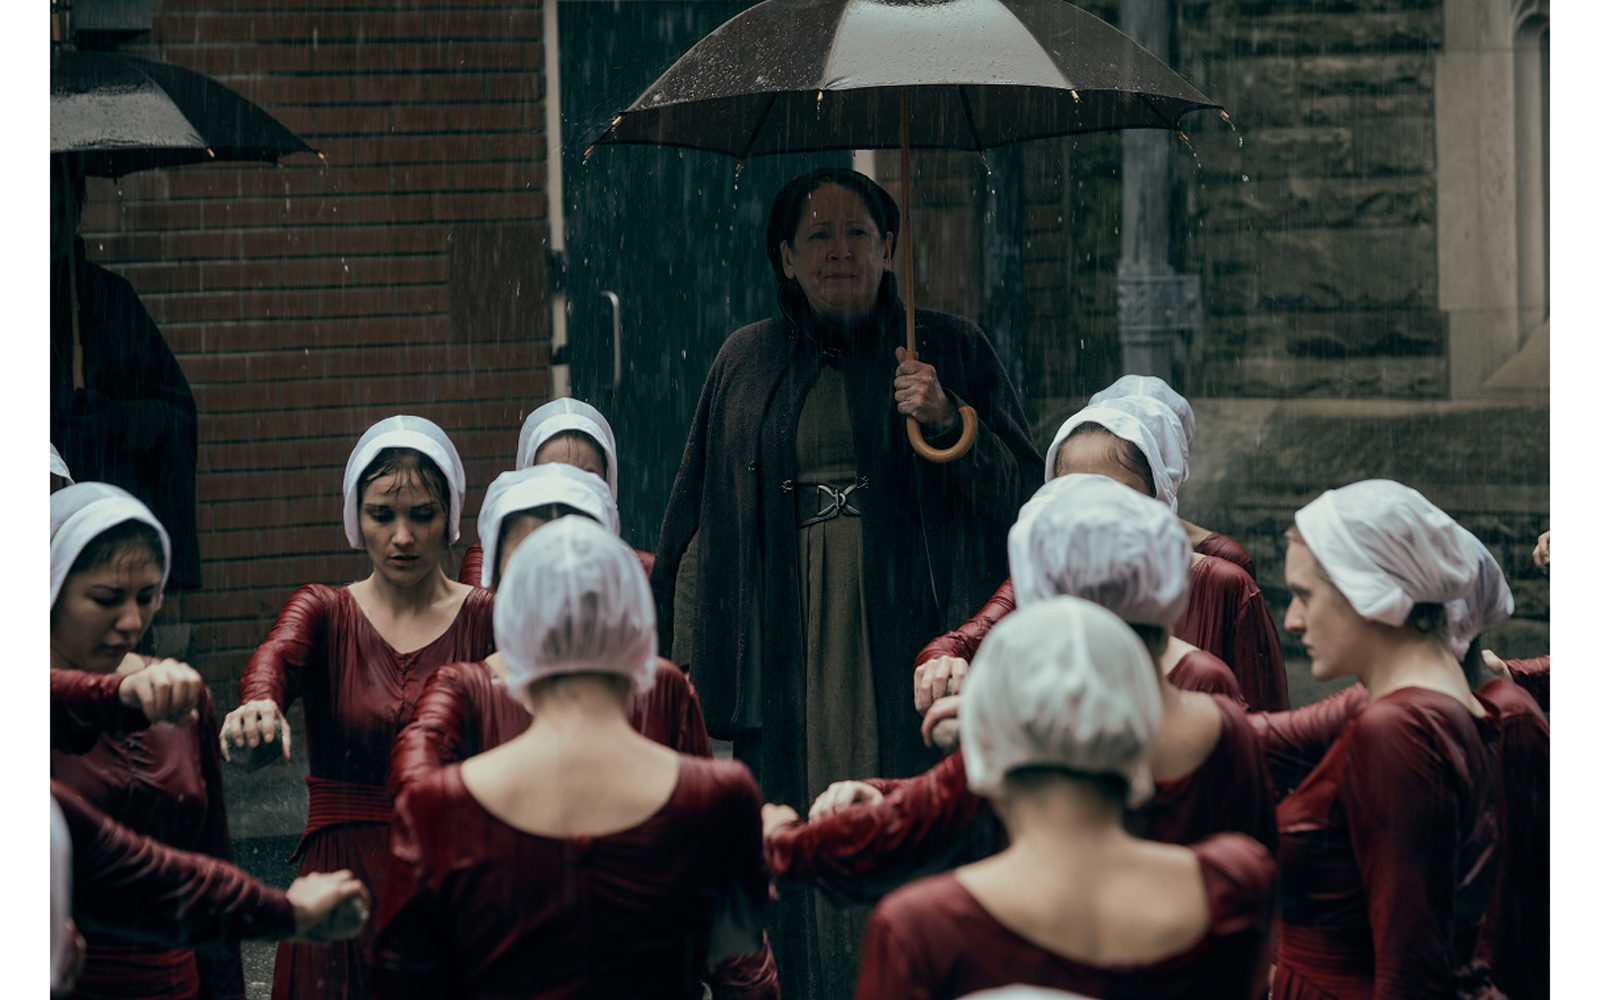 TIMVISION_TheHandmaidsTale2_26Aprile-(0)